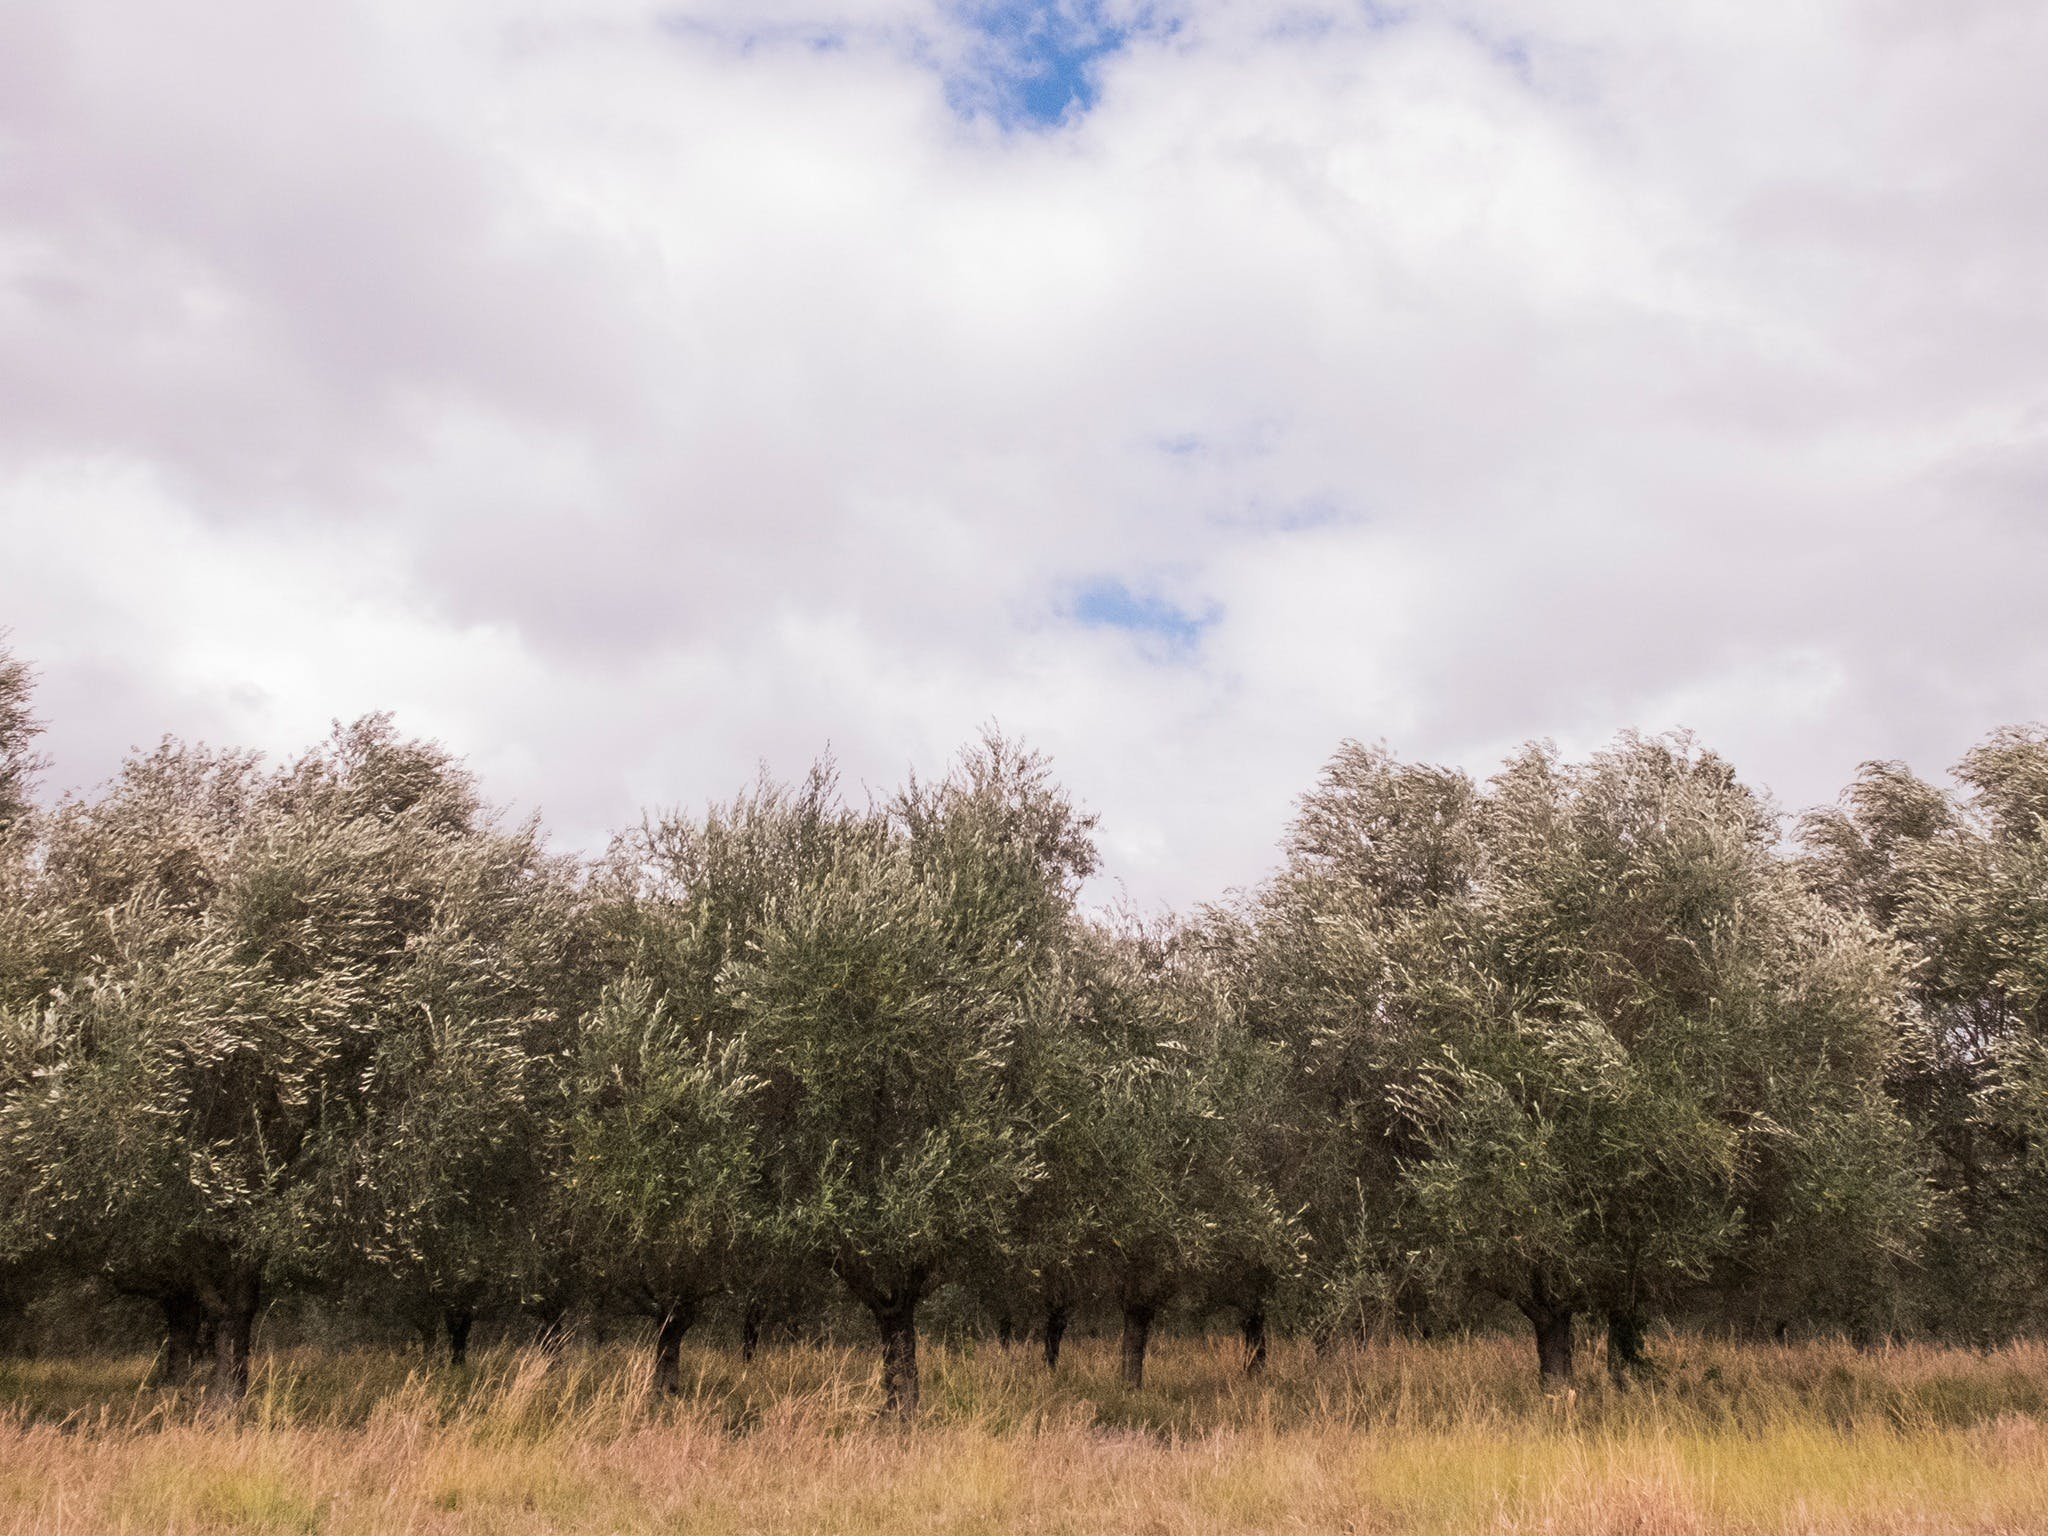 Image of Olive trees